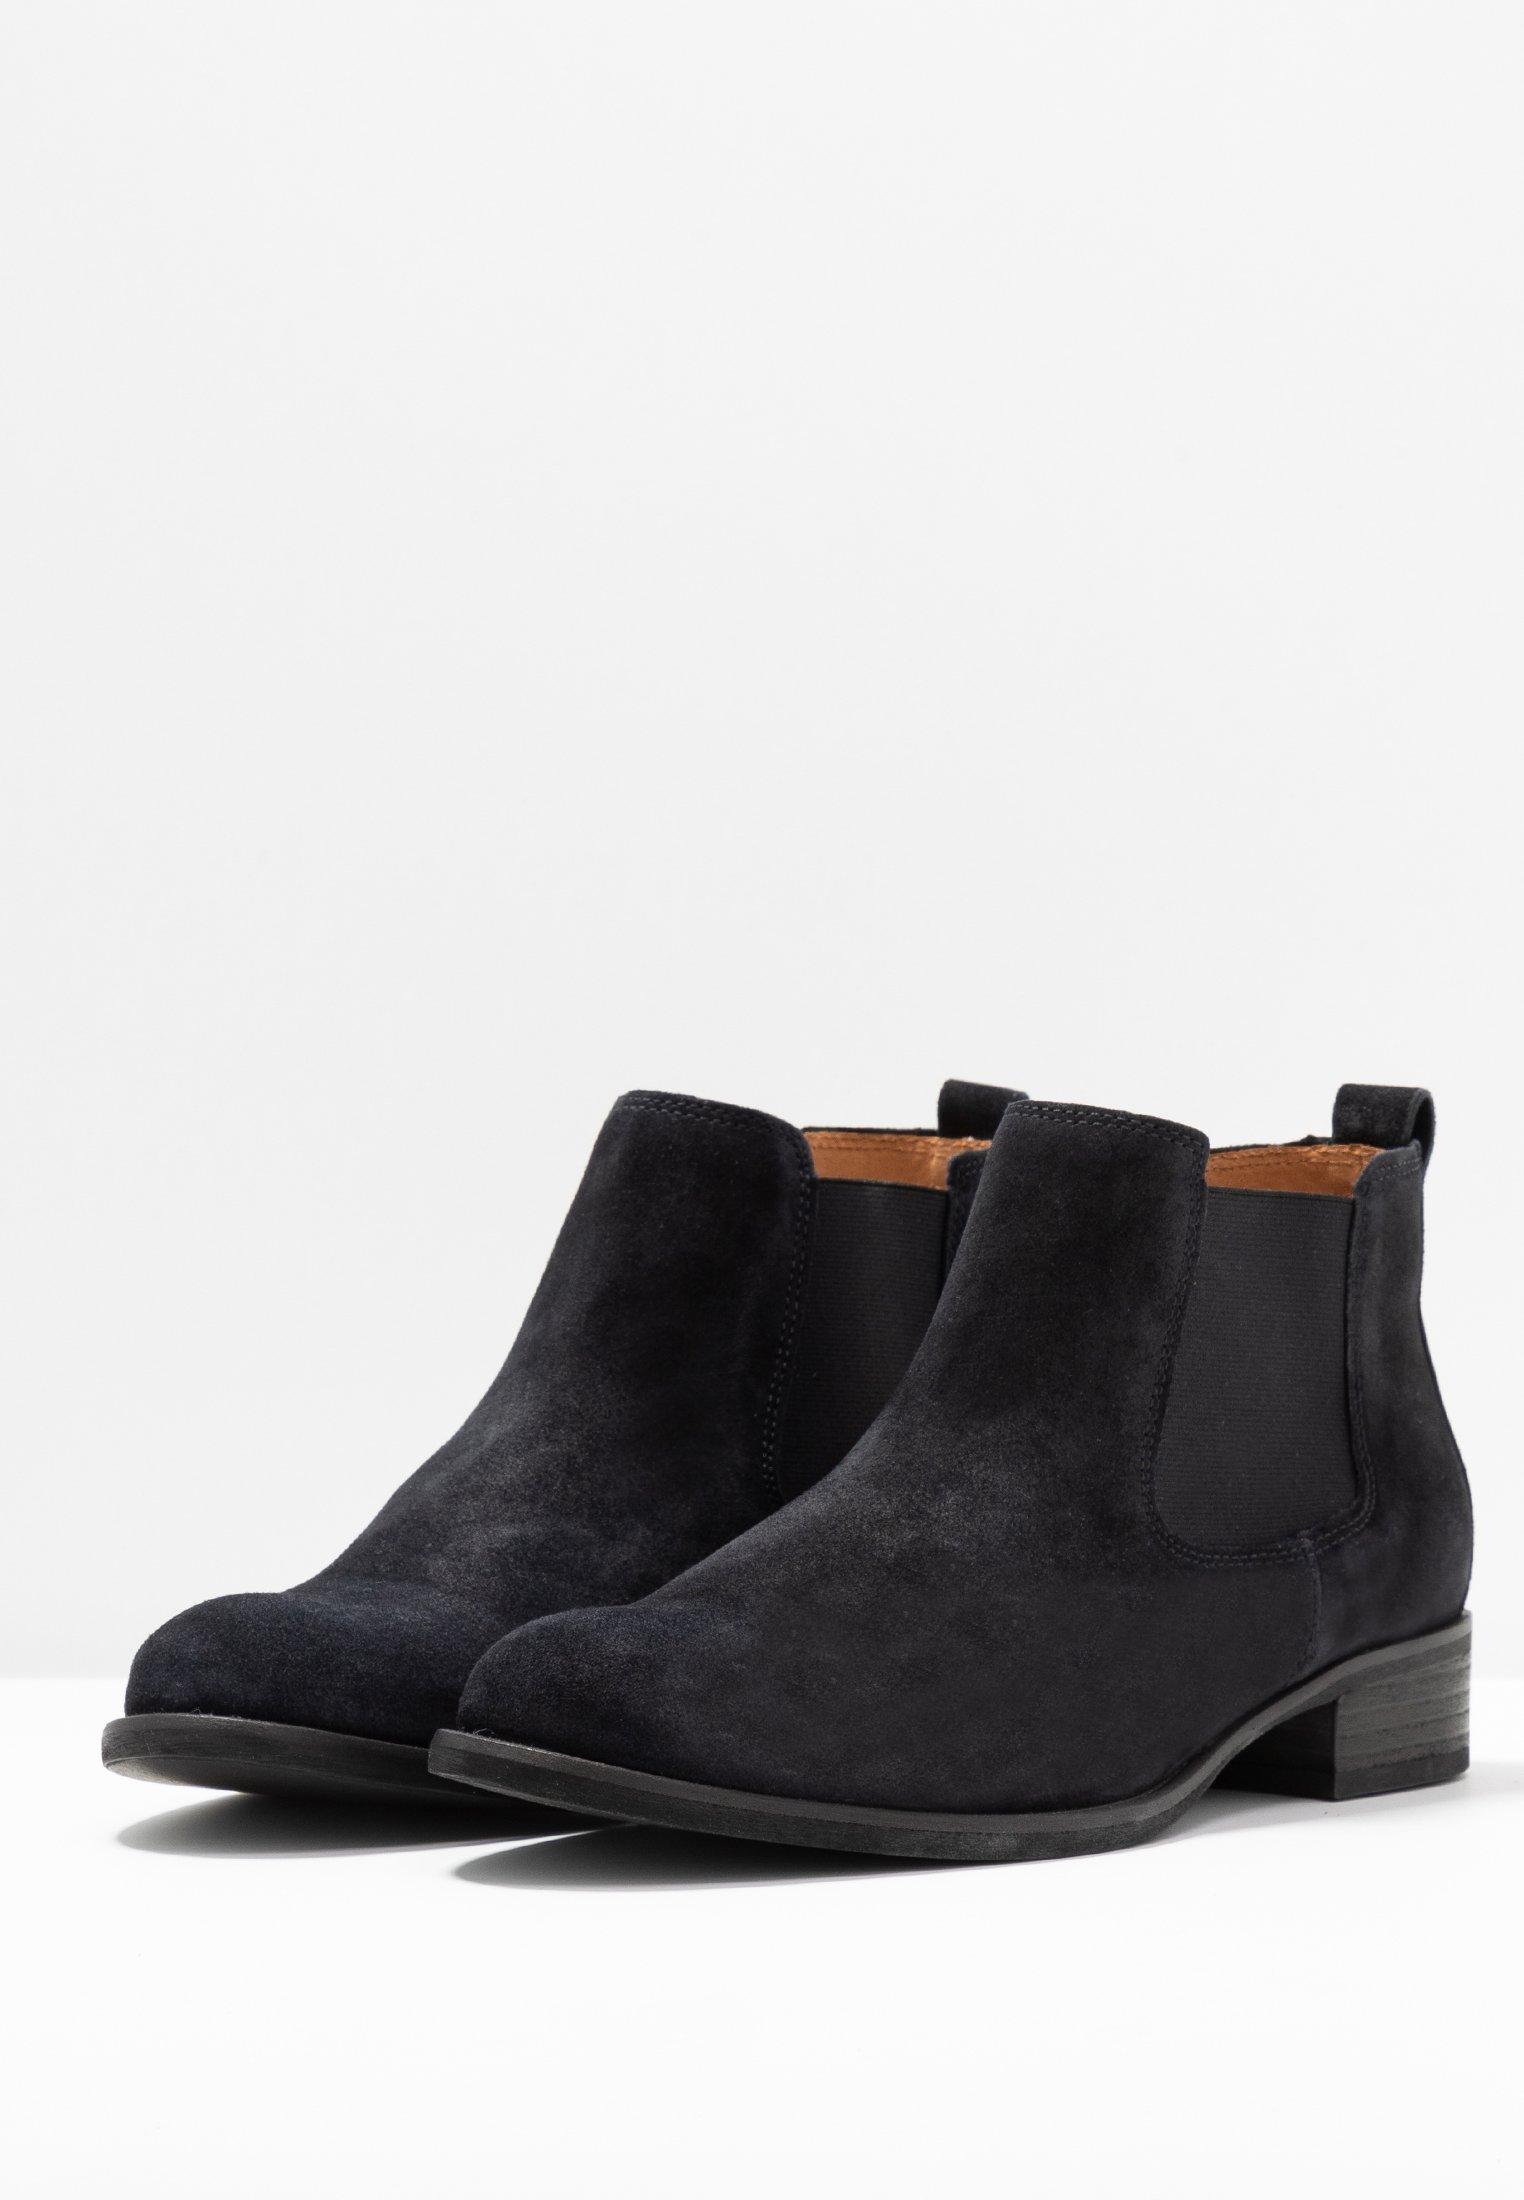 Gabor Ankle Boot pazifik